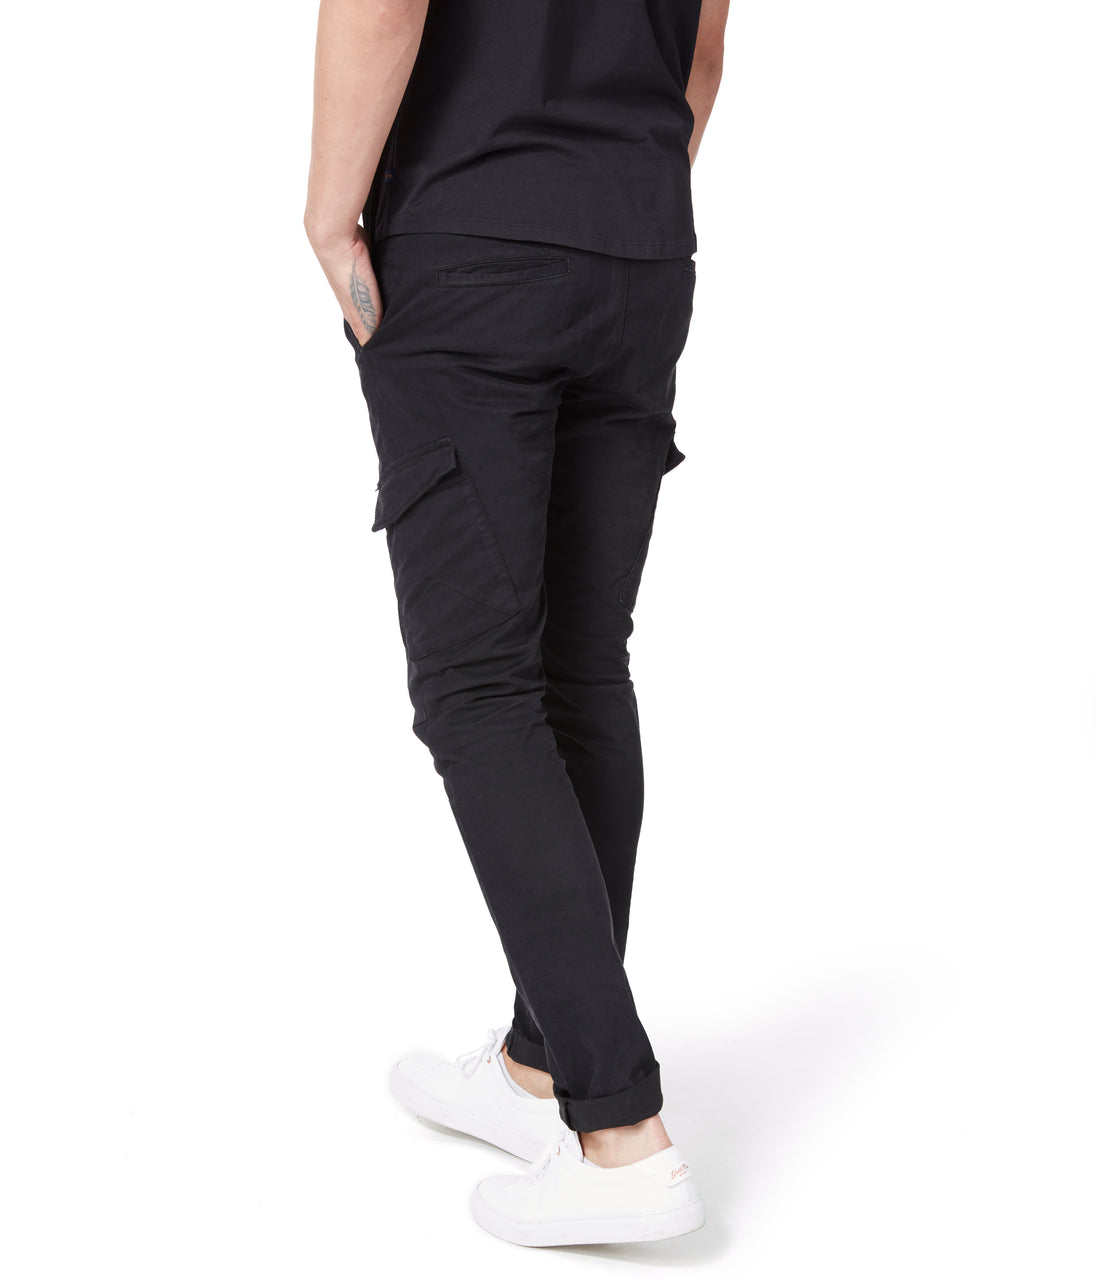 Pro Stretch Twill Star Cargo Chino - Black - Good Man Brand - Pro Stretch Twill Star Cargo Chino - Black